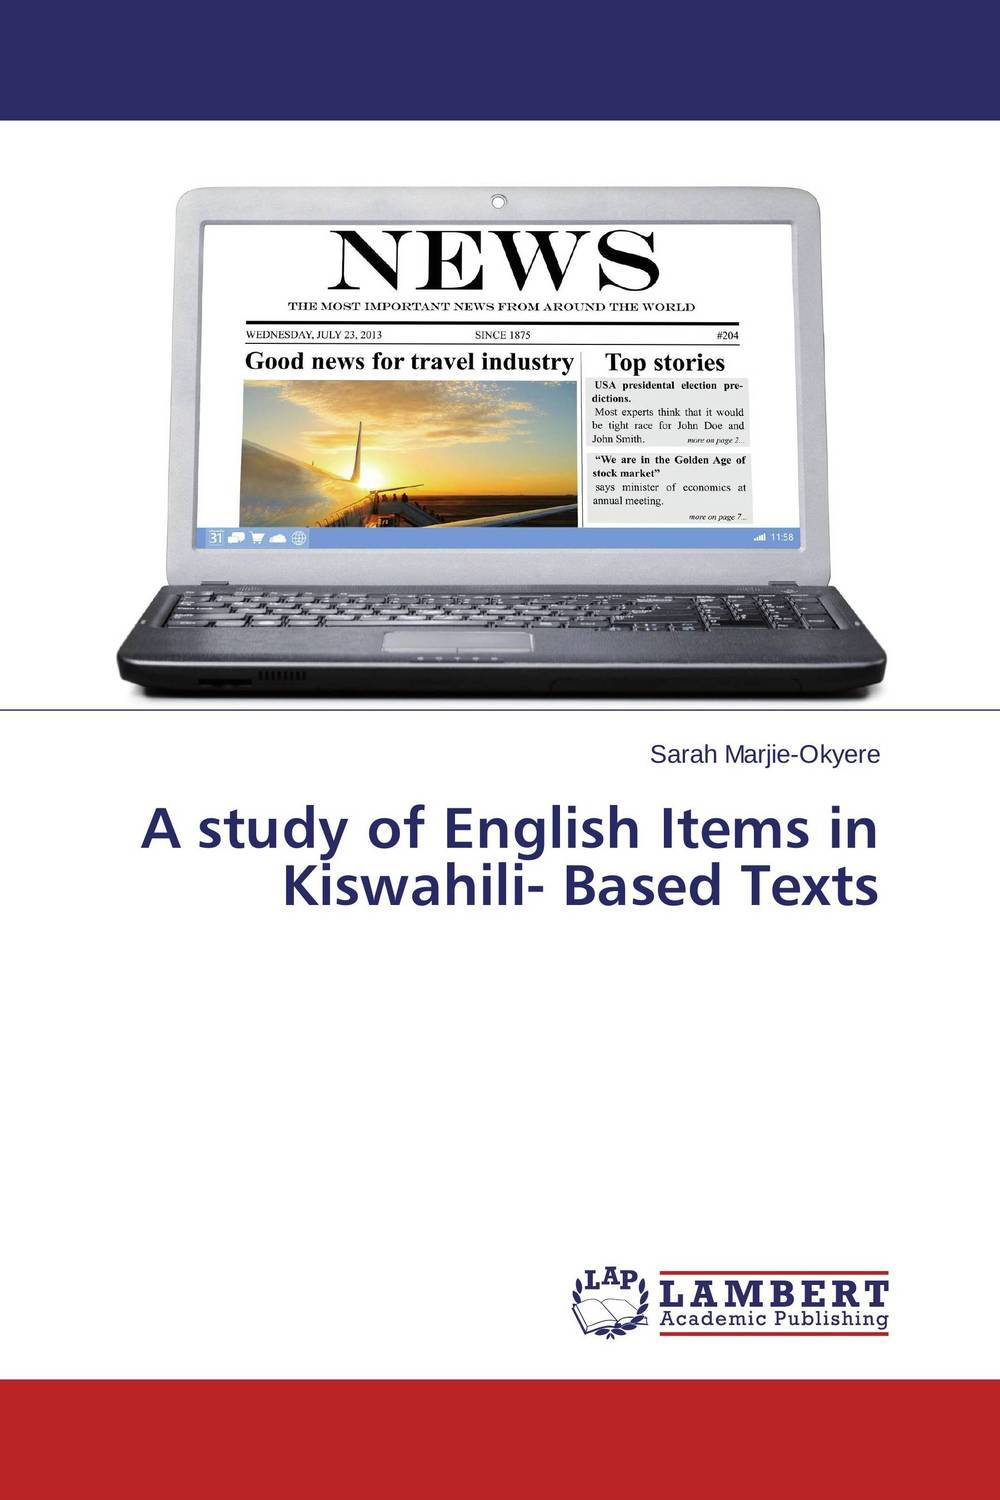 A study of English Items in Kiswahili- Based Texts татьяна олива моралес the comparative typology of spanish and english texts story and anecdotes for reading translating and retelling in spanish and english adapted by © linguistic rescue method level a1 a2